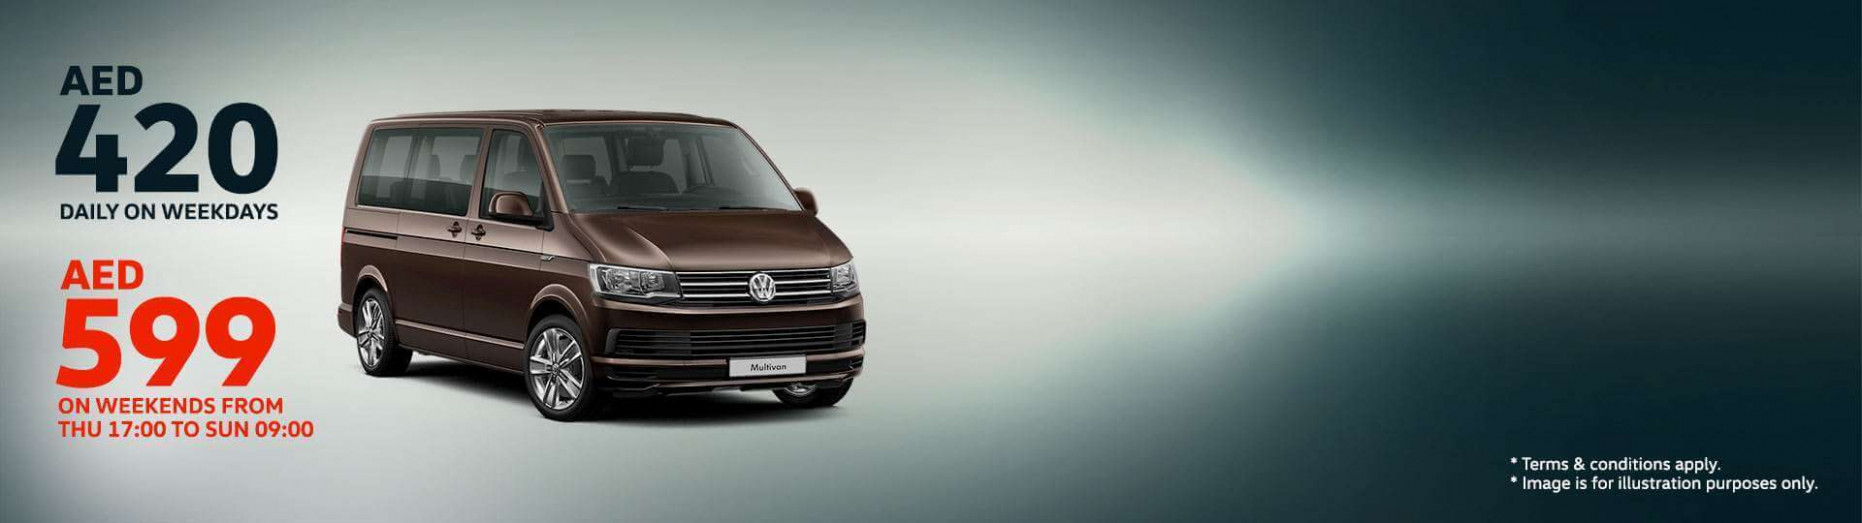 Volkswagen Middle East | Official home of VW Dubai